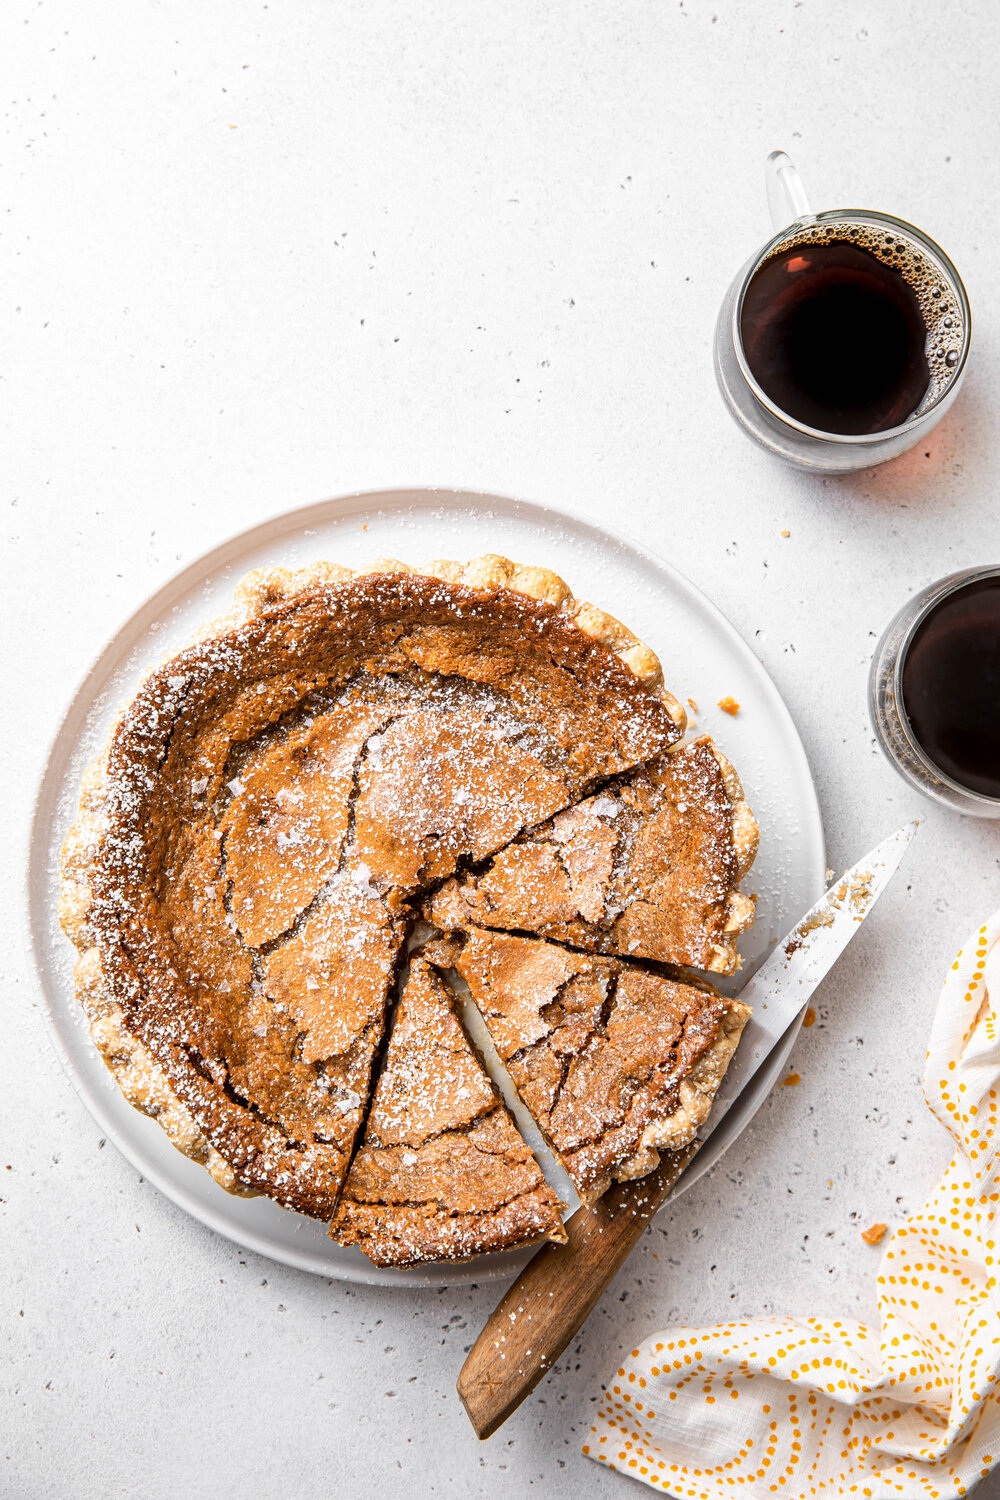 A French Canadian Maple Sugar Pie with powdered sugar on top.